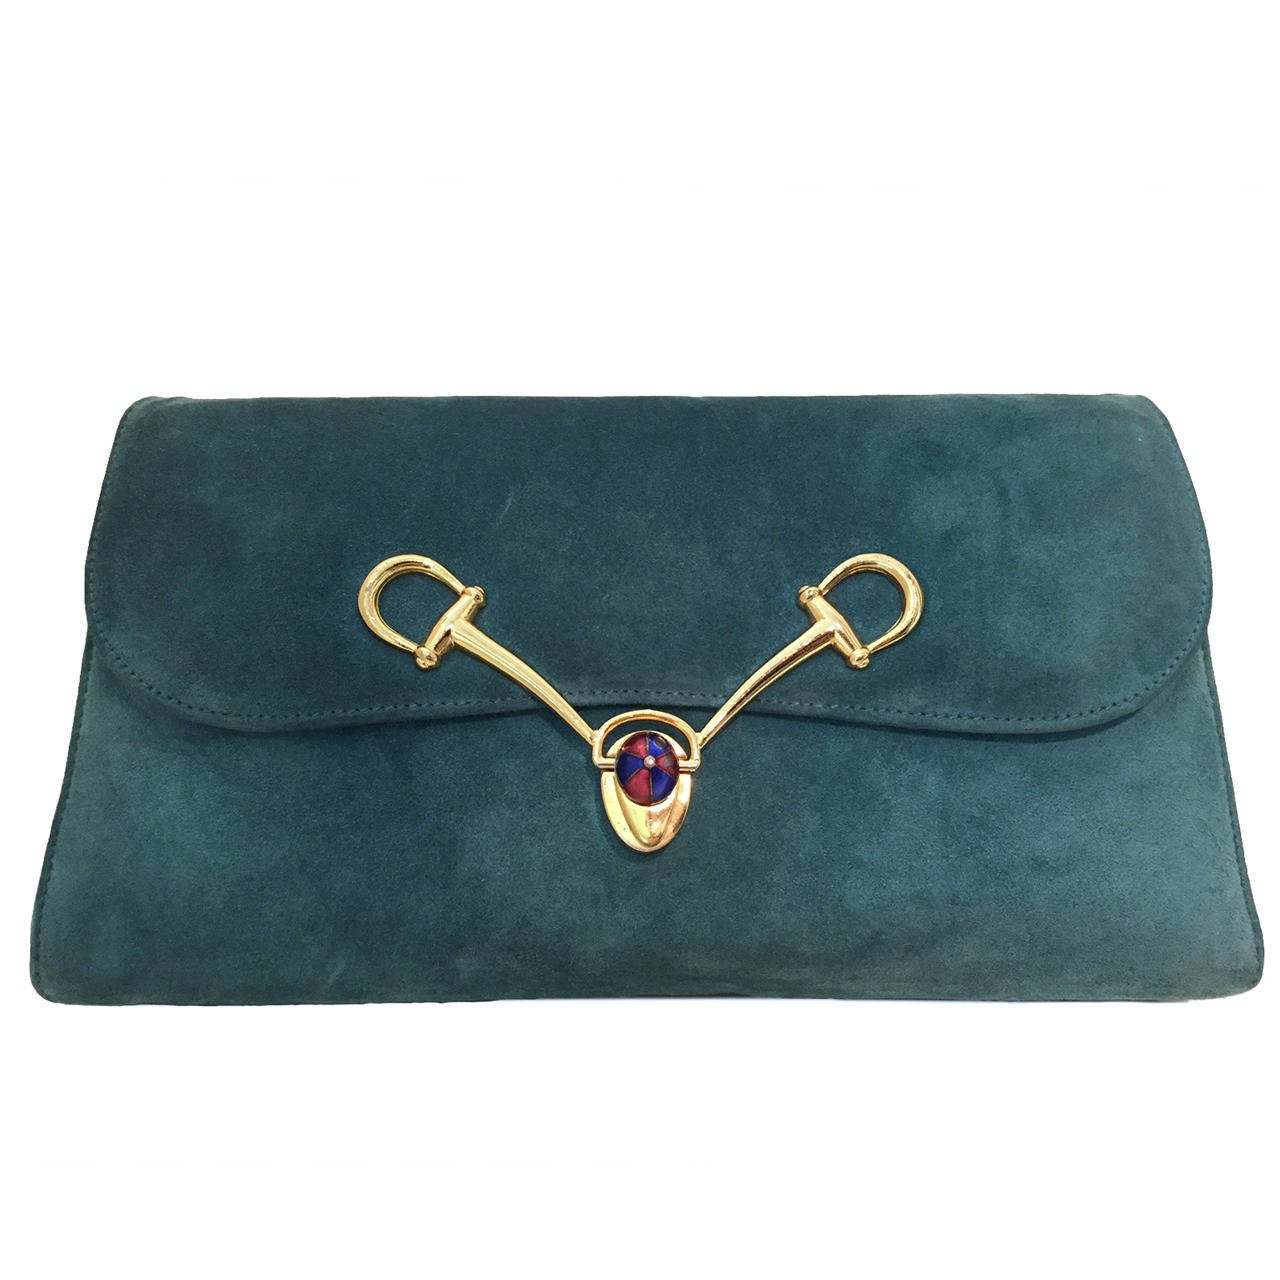 1970s Gucci Turquoise Suede Clutch / Shoulder Bag with Enameled Closure 1